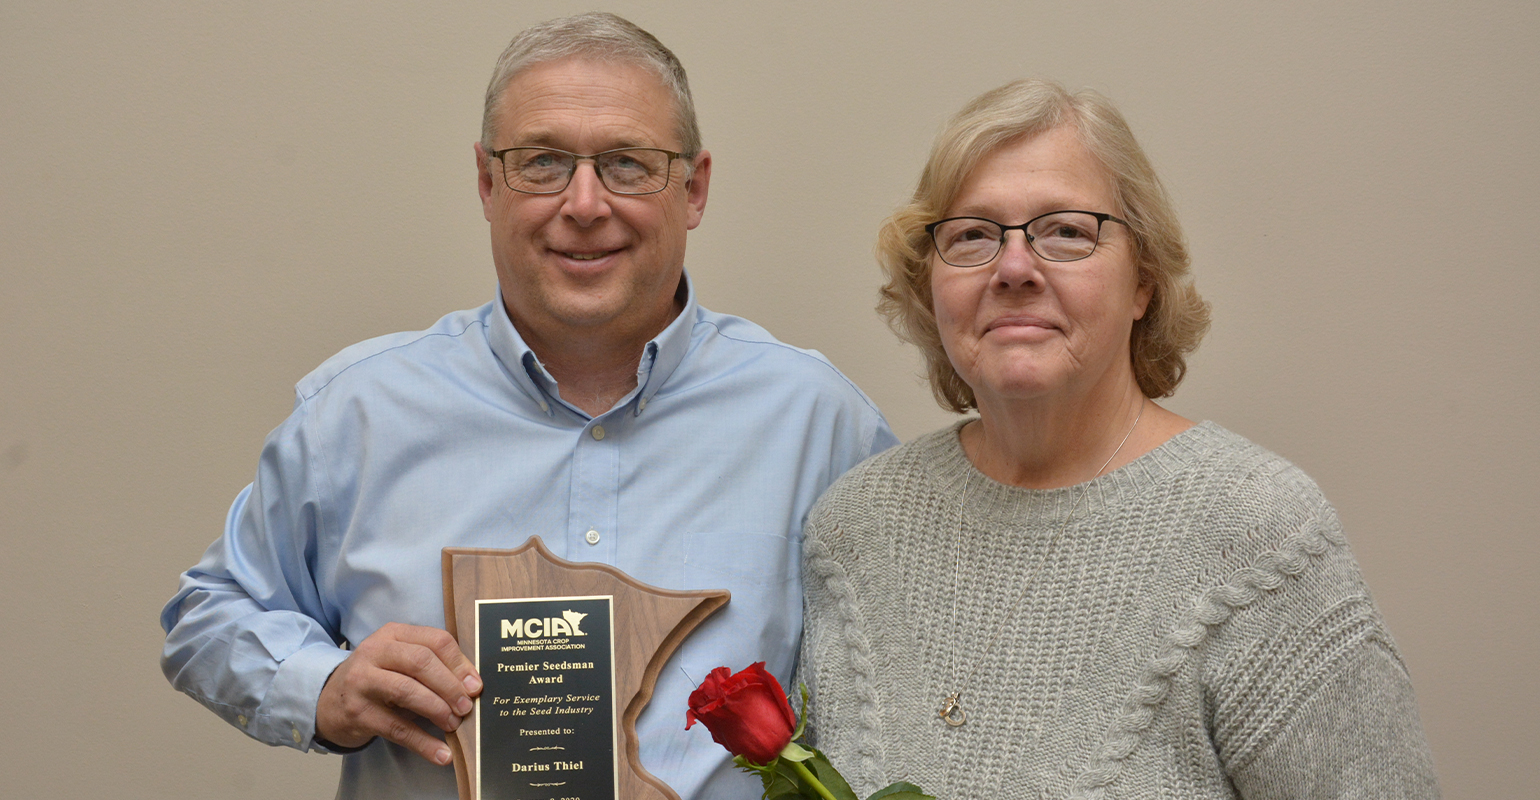 Darius Thiel and wife Terri receivied award from MCIA